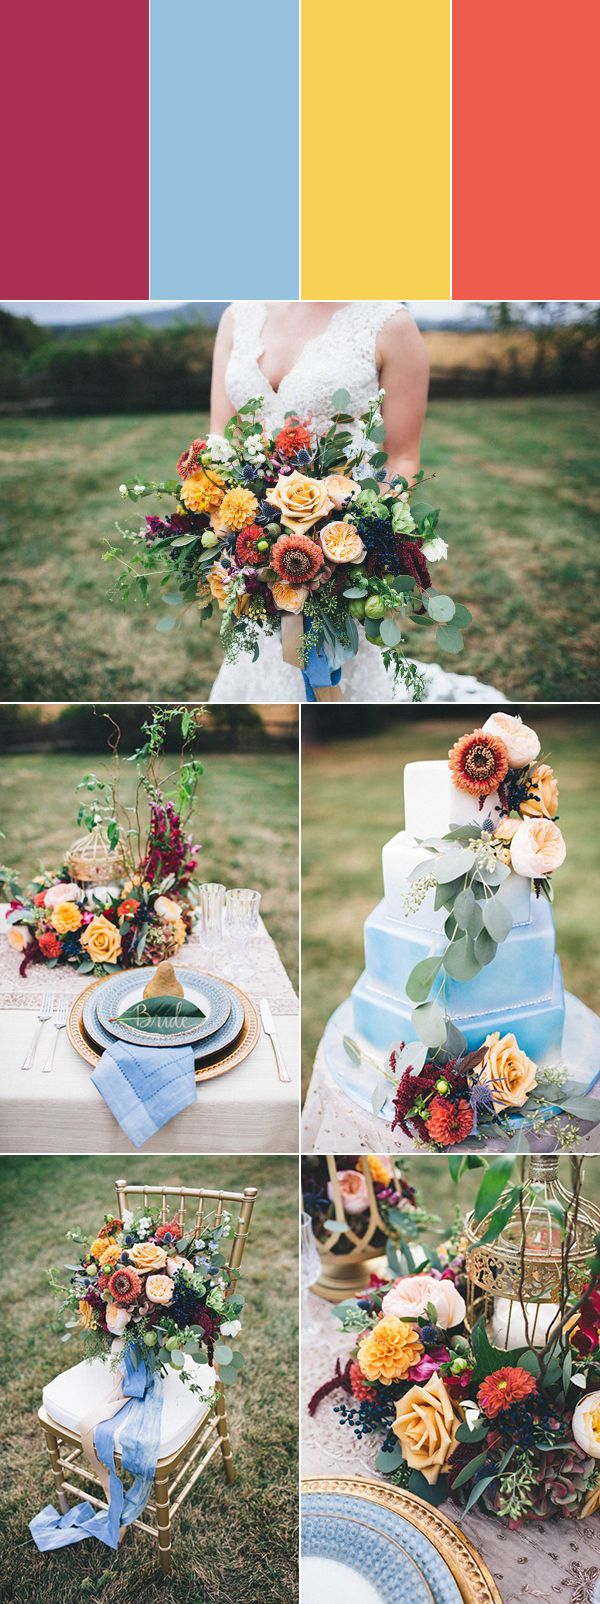 Allow the spirit of the harvest to dictate your wedding colors with vibrant and warm hues like marigold and pumpkin. When juxtaposed with a cool shade of dusty blue, your beloved burgundy really pops!